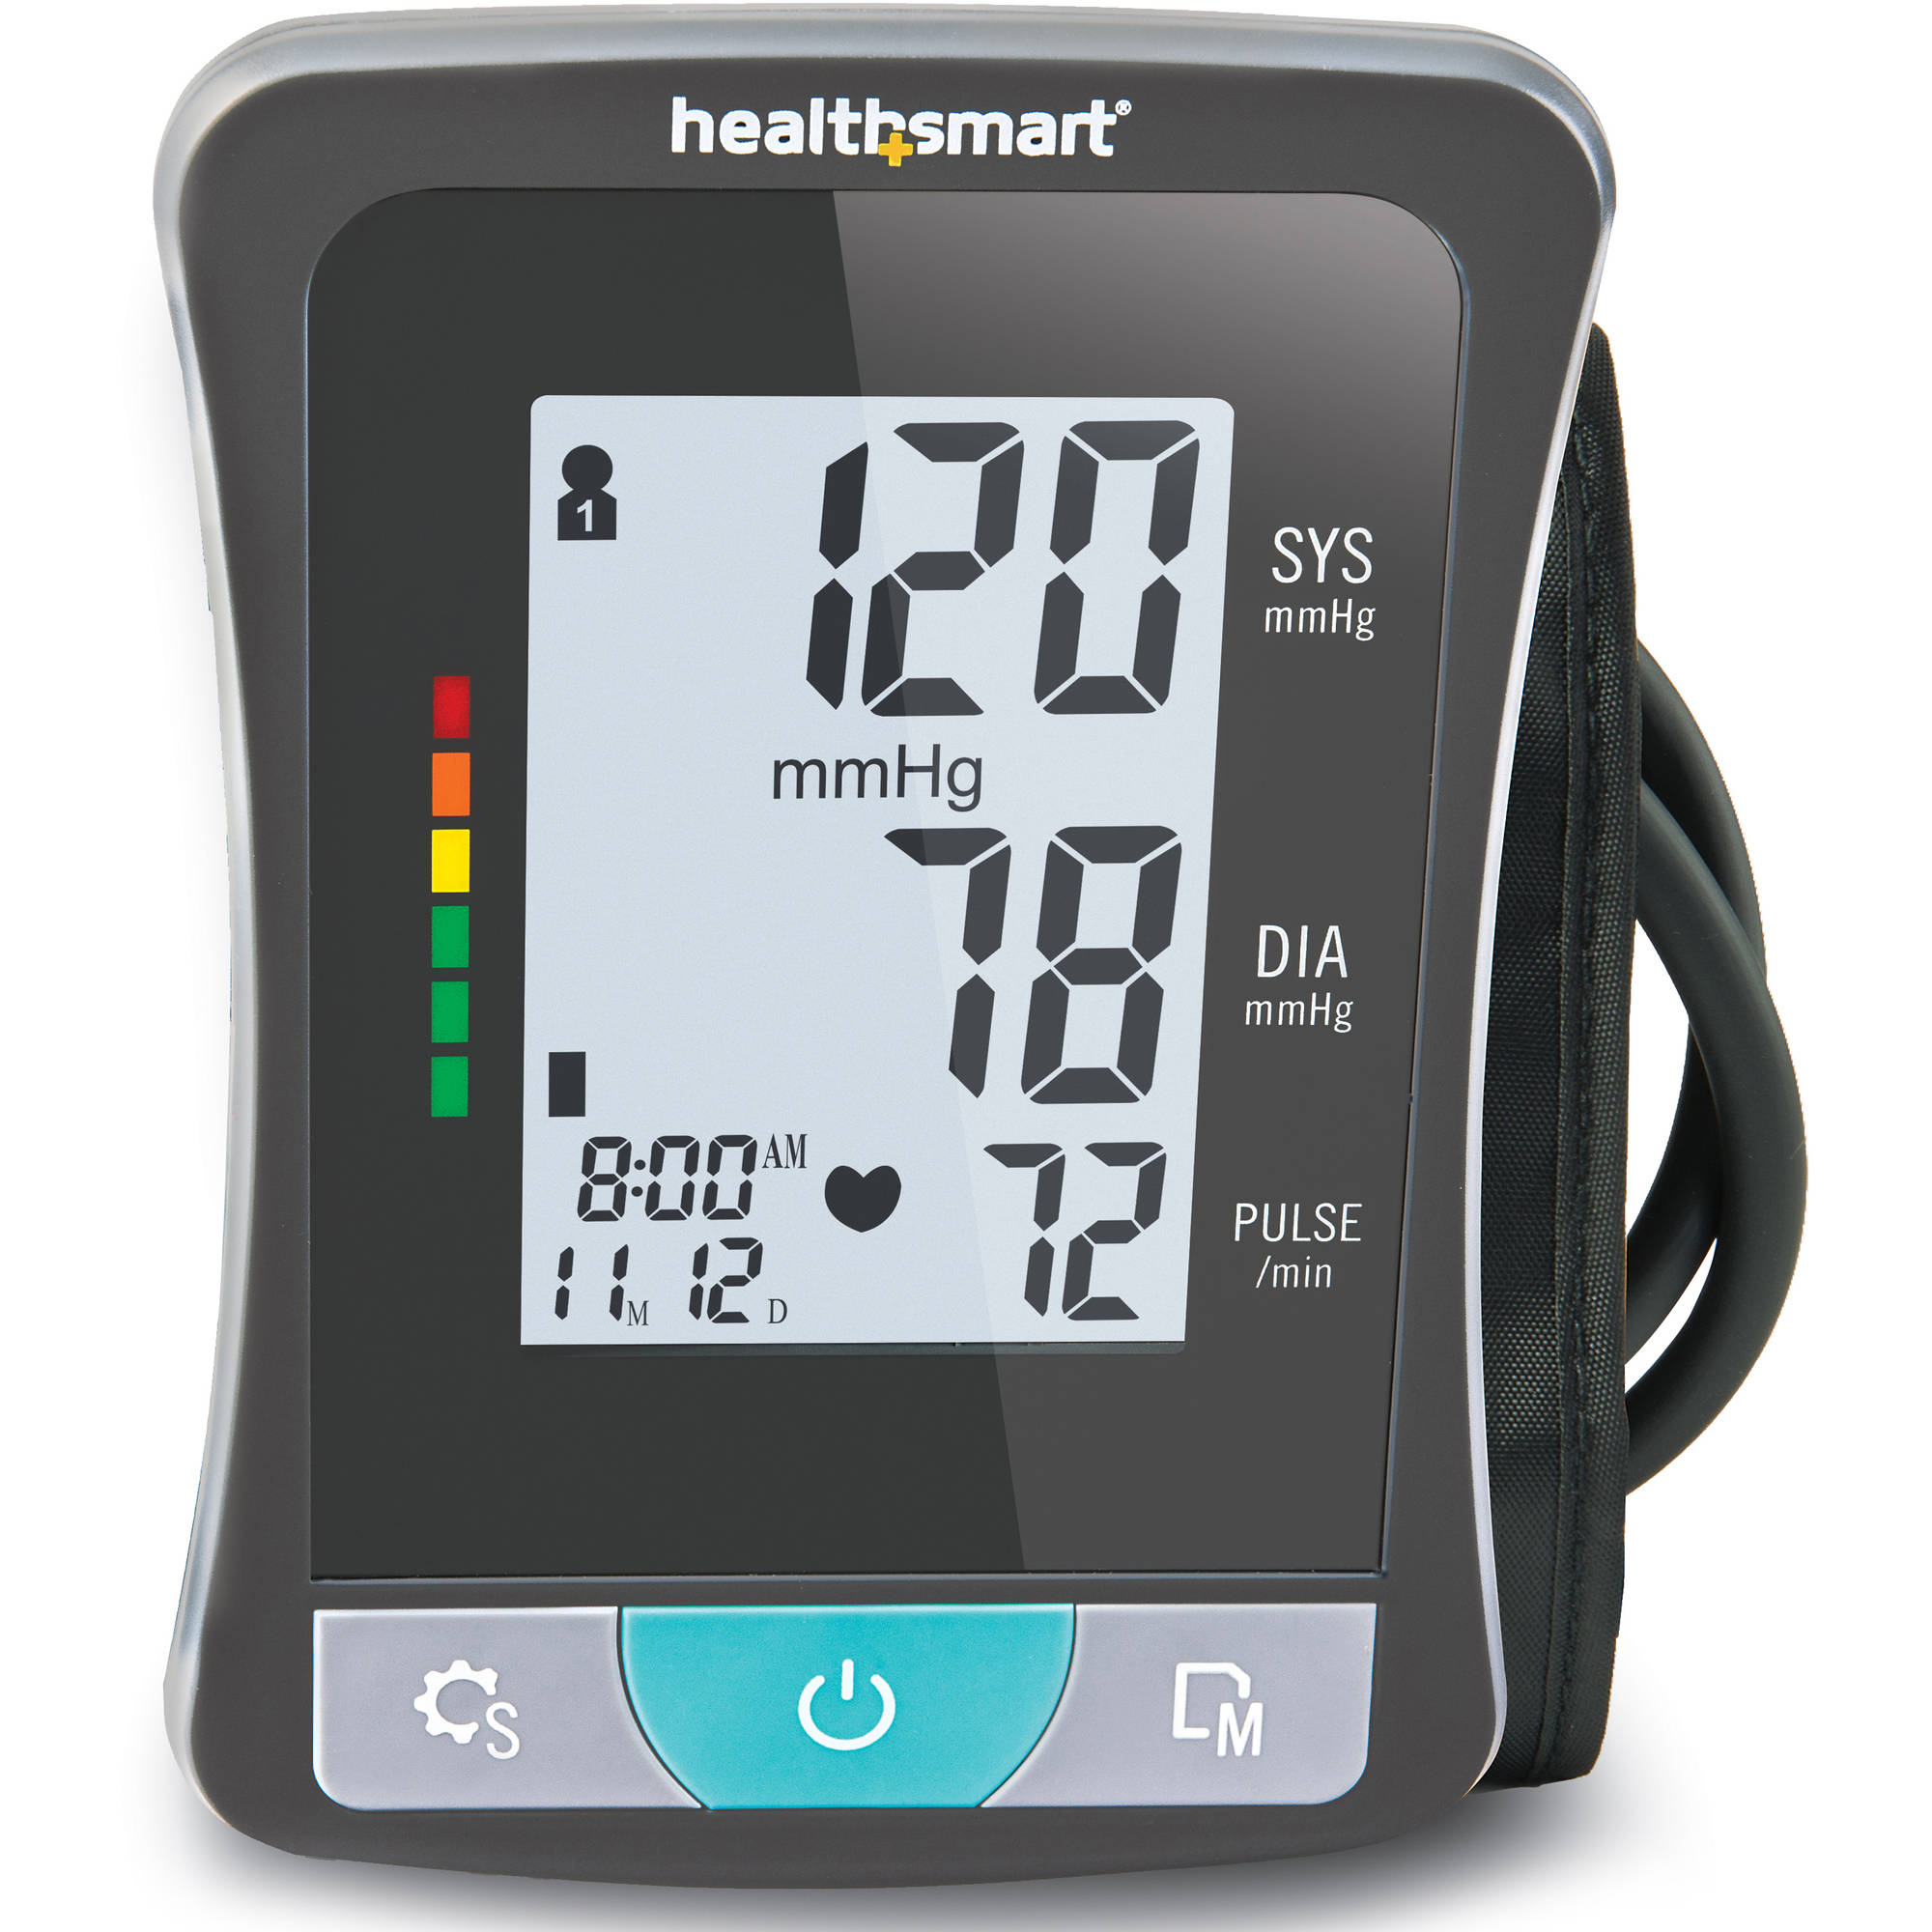 HealthSmart Select Series Clinically Accurate Automatic Digital Upper Arm Blood Pressure Monitor with LCD Display and 2 Person Memory, Black and Gray